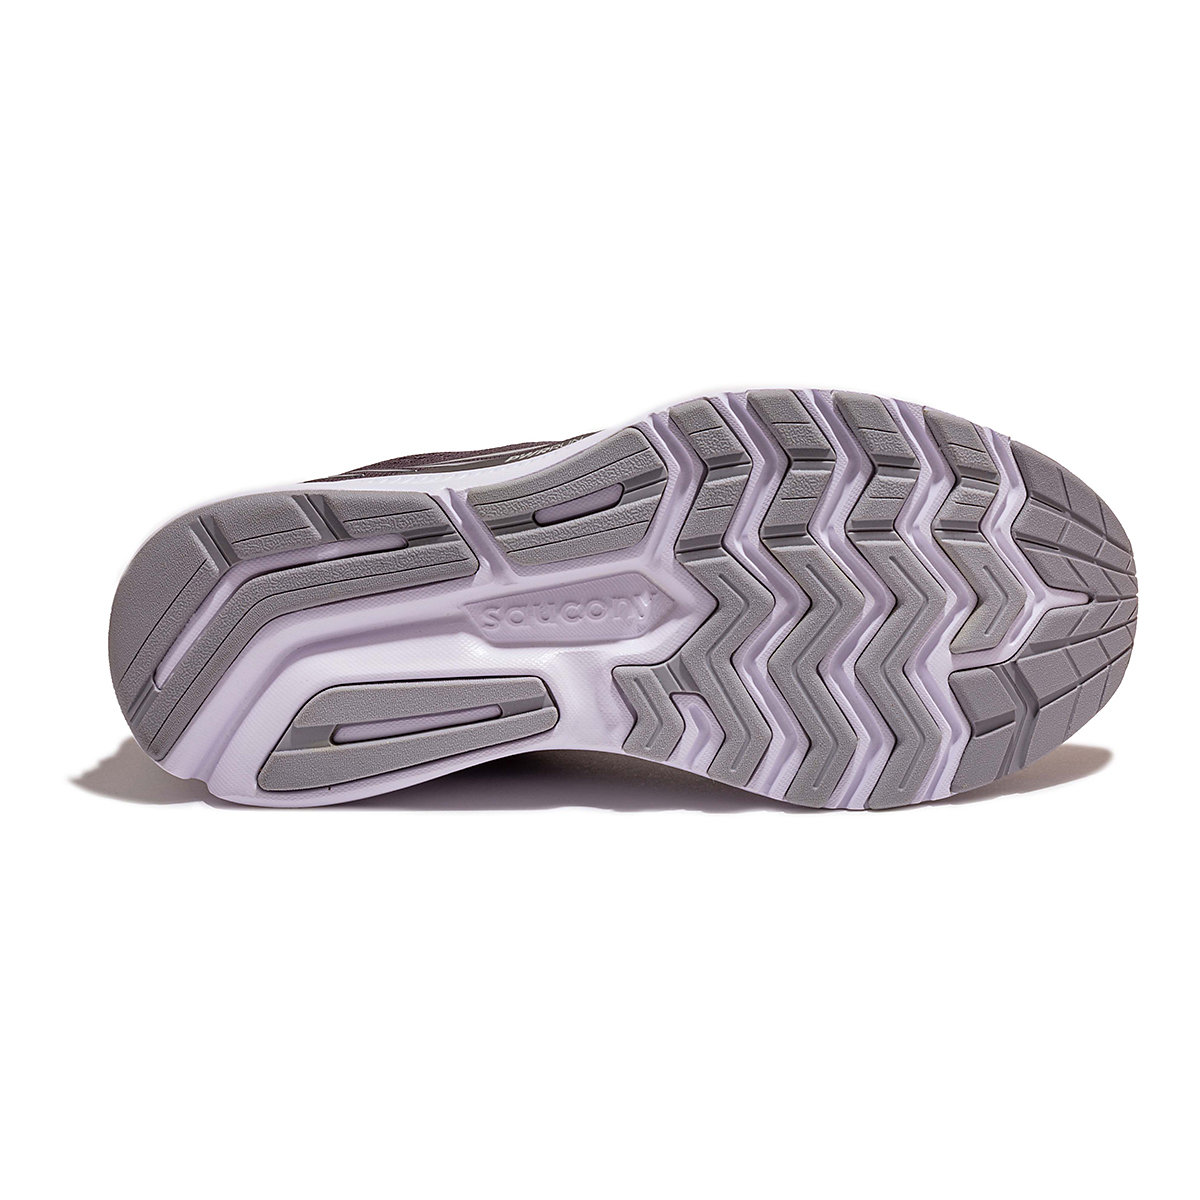 Women's Saucony Ride 14 Running Shoe - Color: Charcoal/Black - Size: 5 - Width: Wide, Charcoal/Black, large, image 4